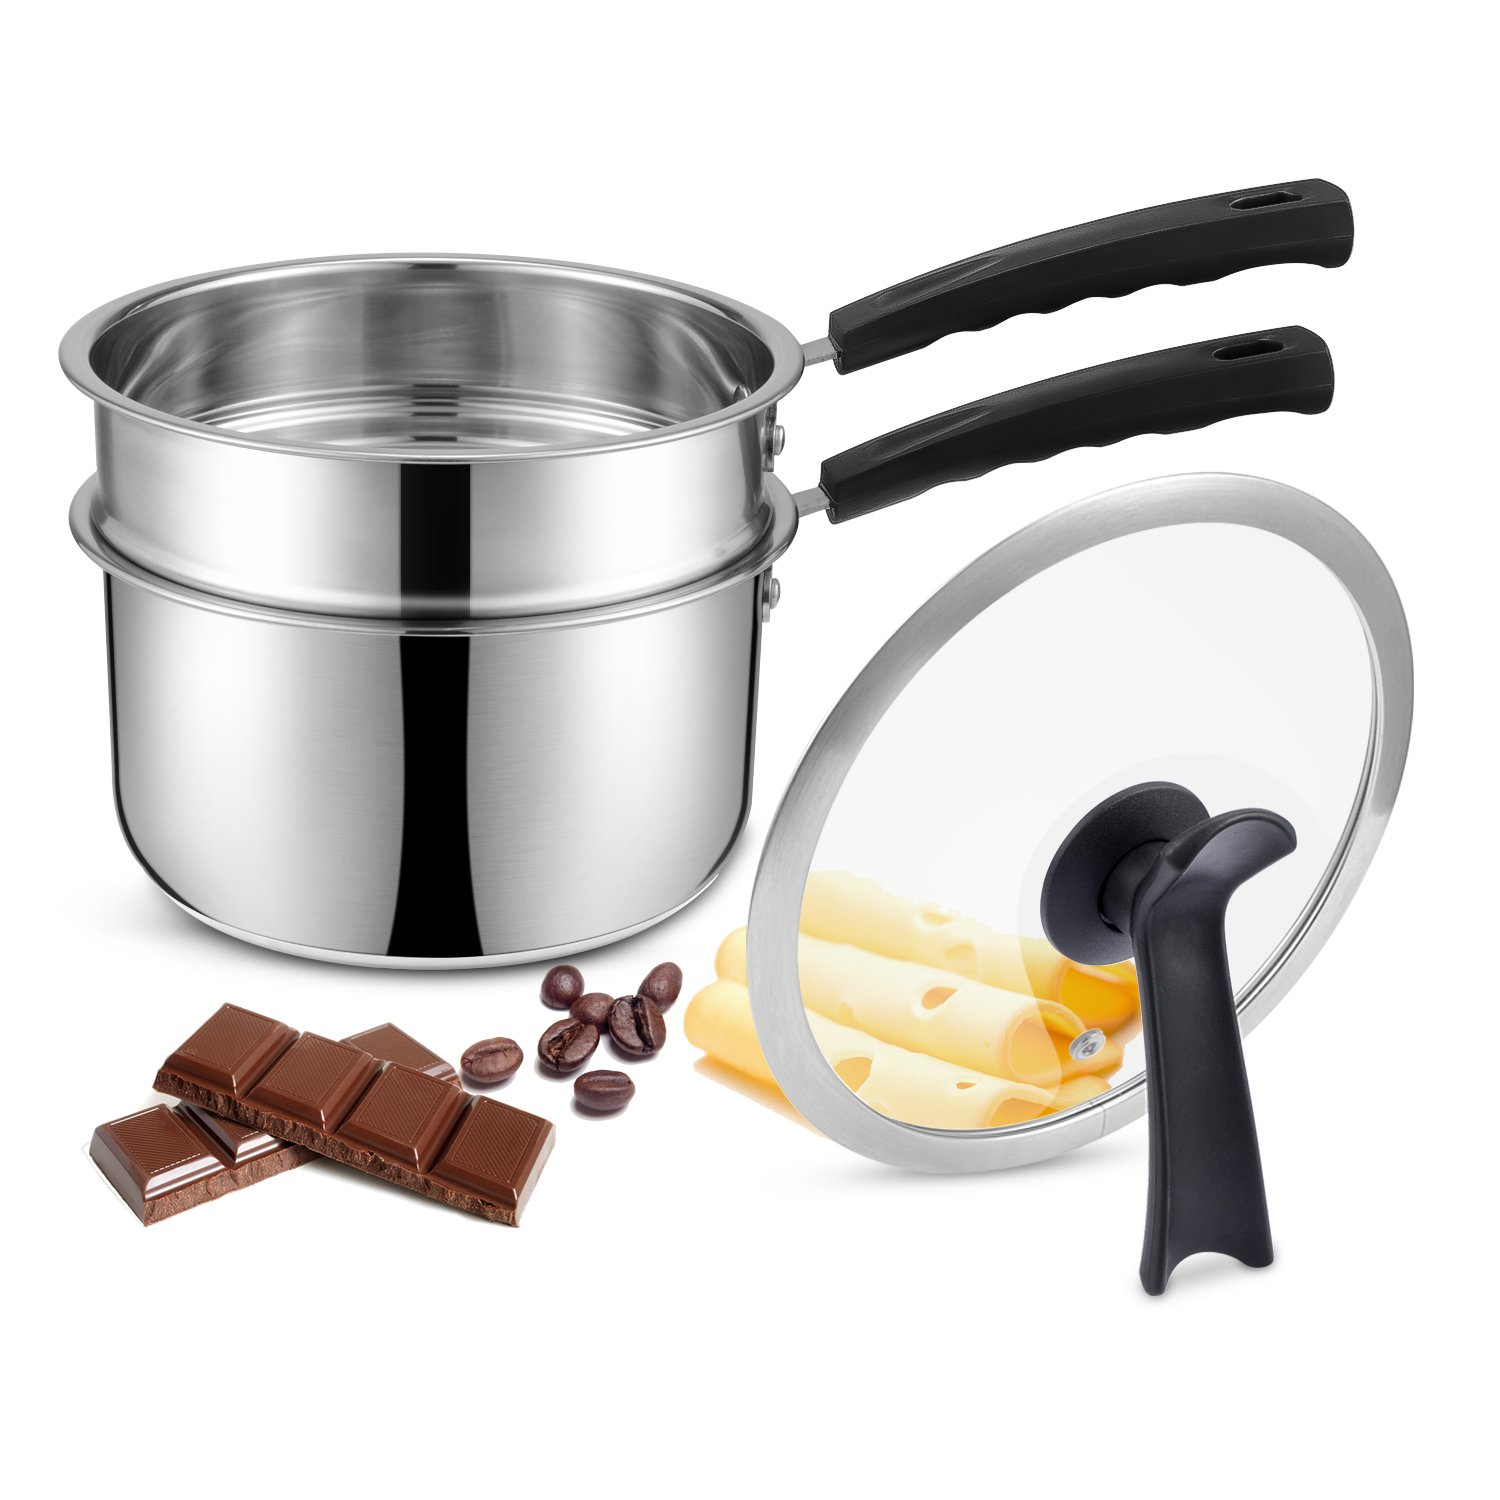 Double Boilers&Classic Stainless Steel Non-Stick Saucepan,Melting Pot for Butter,Chocolate,Cheese,Caramel and Bonus with Tempered Glass Lid